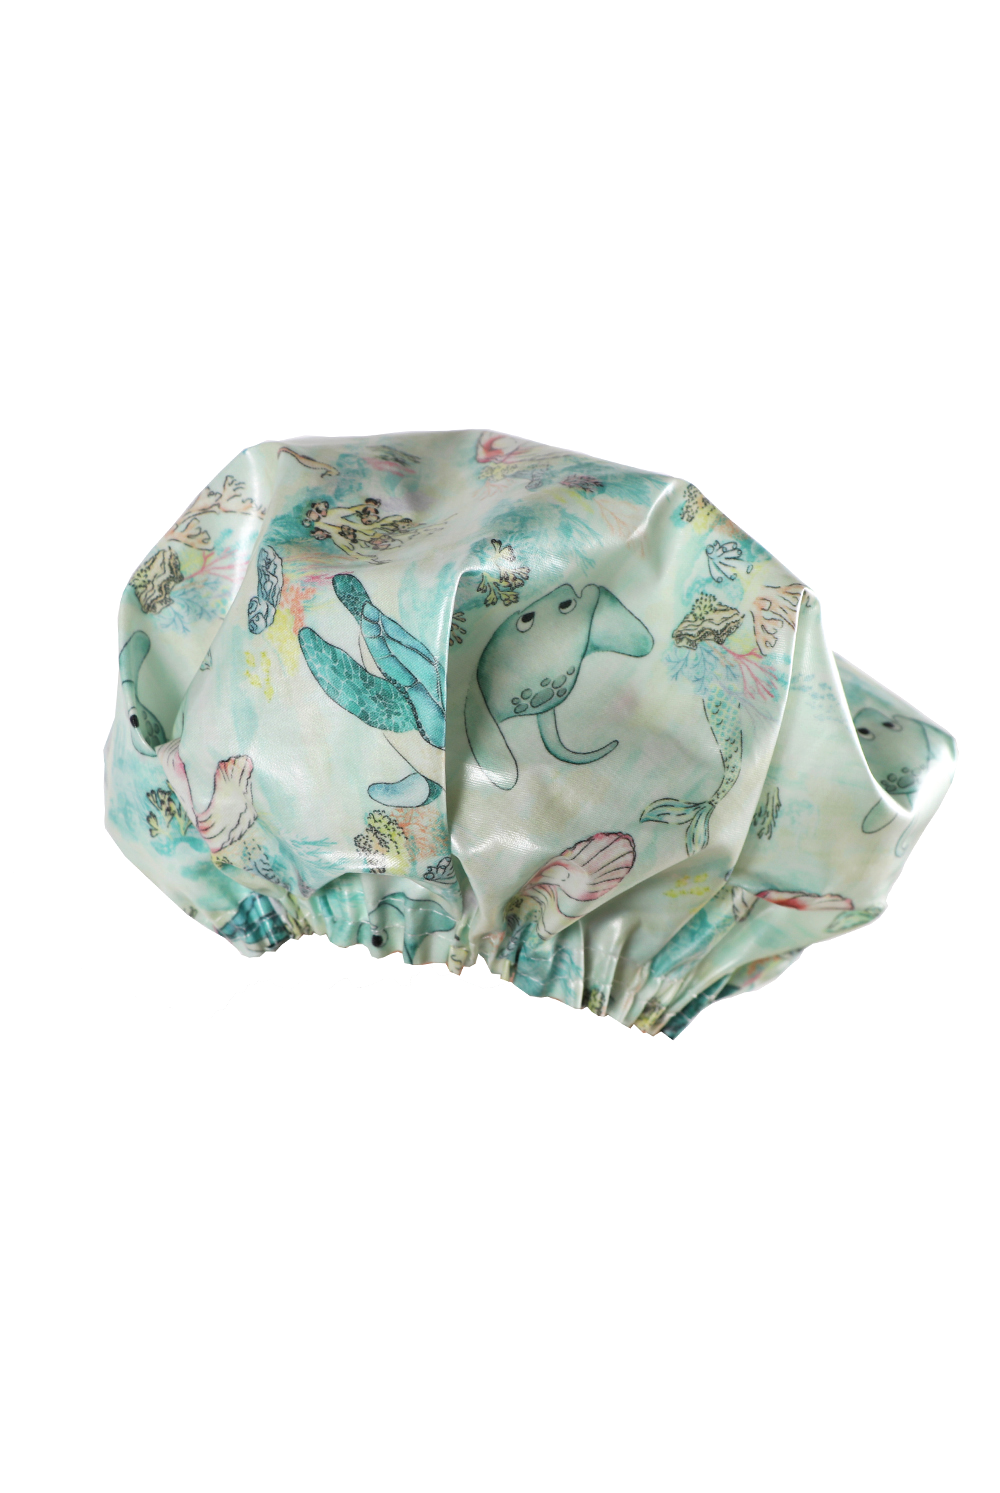 Lady Elliot Island Shower Cap